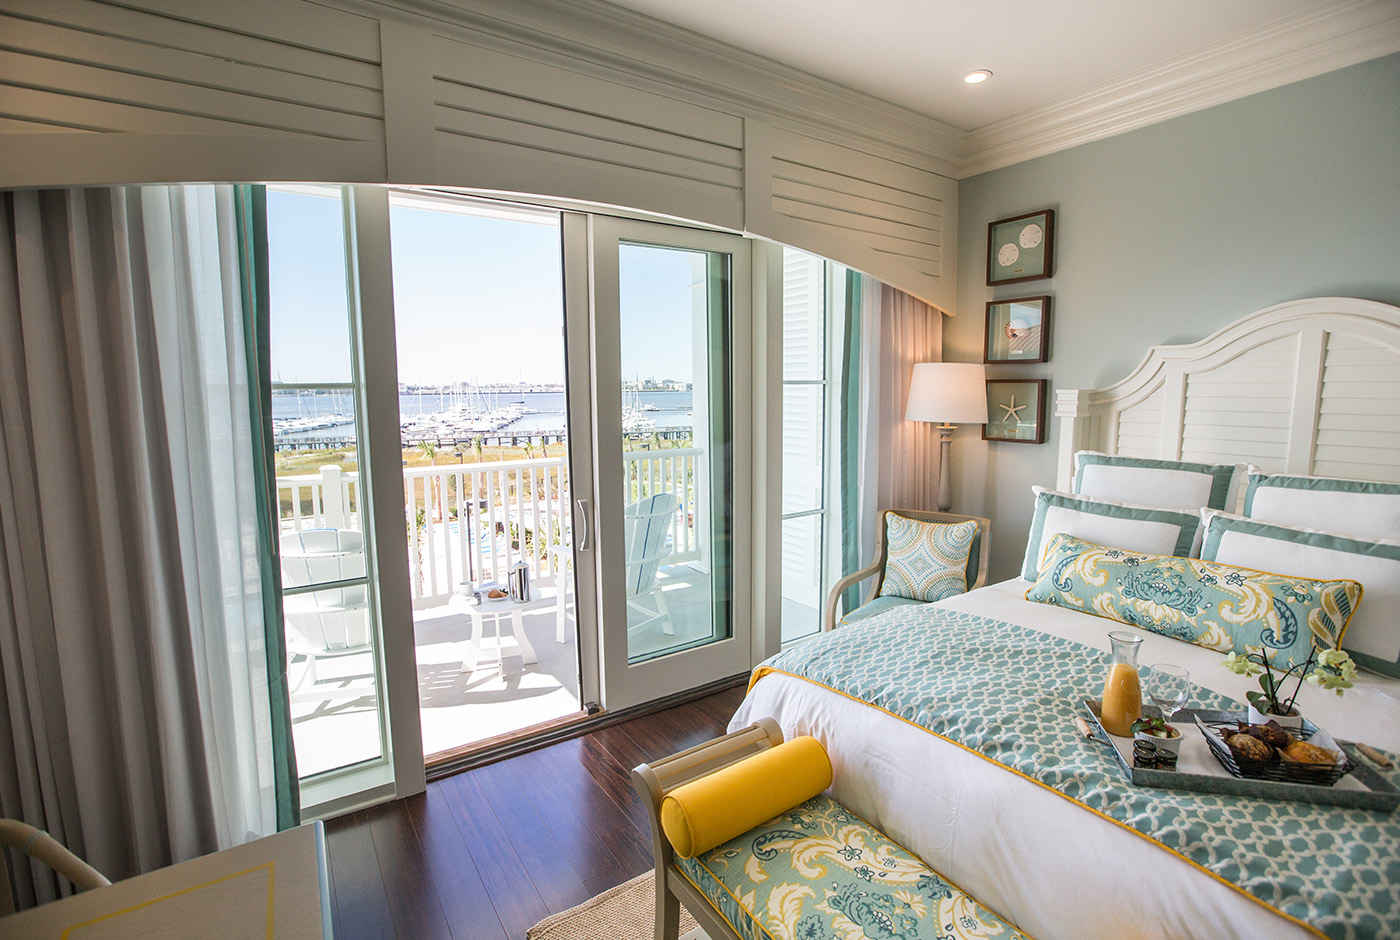 Charleston Hotel Room with a View of the Beach